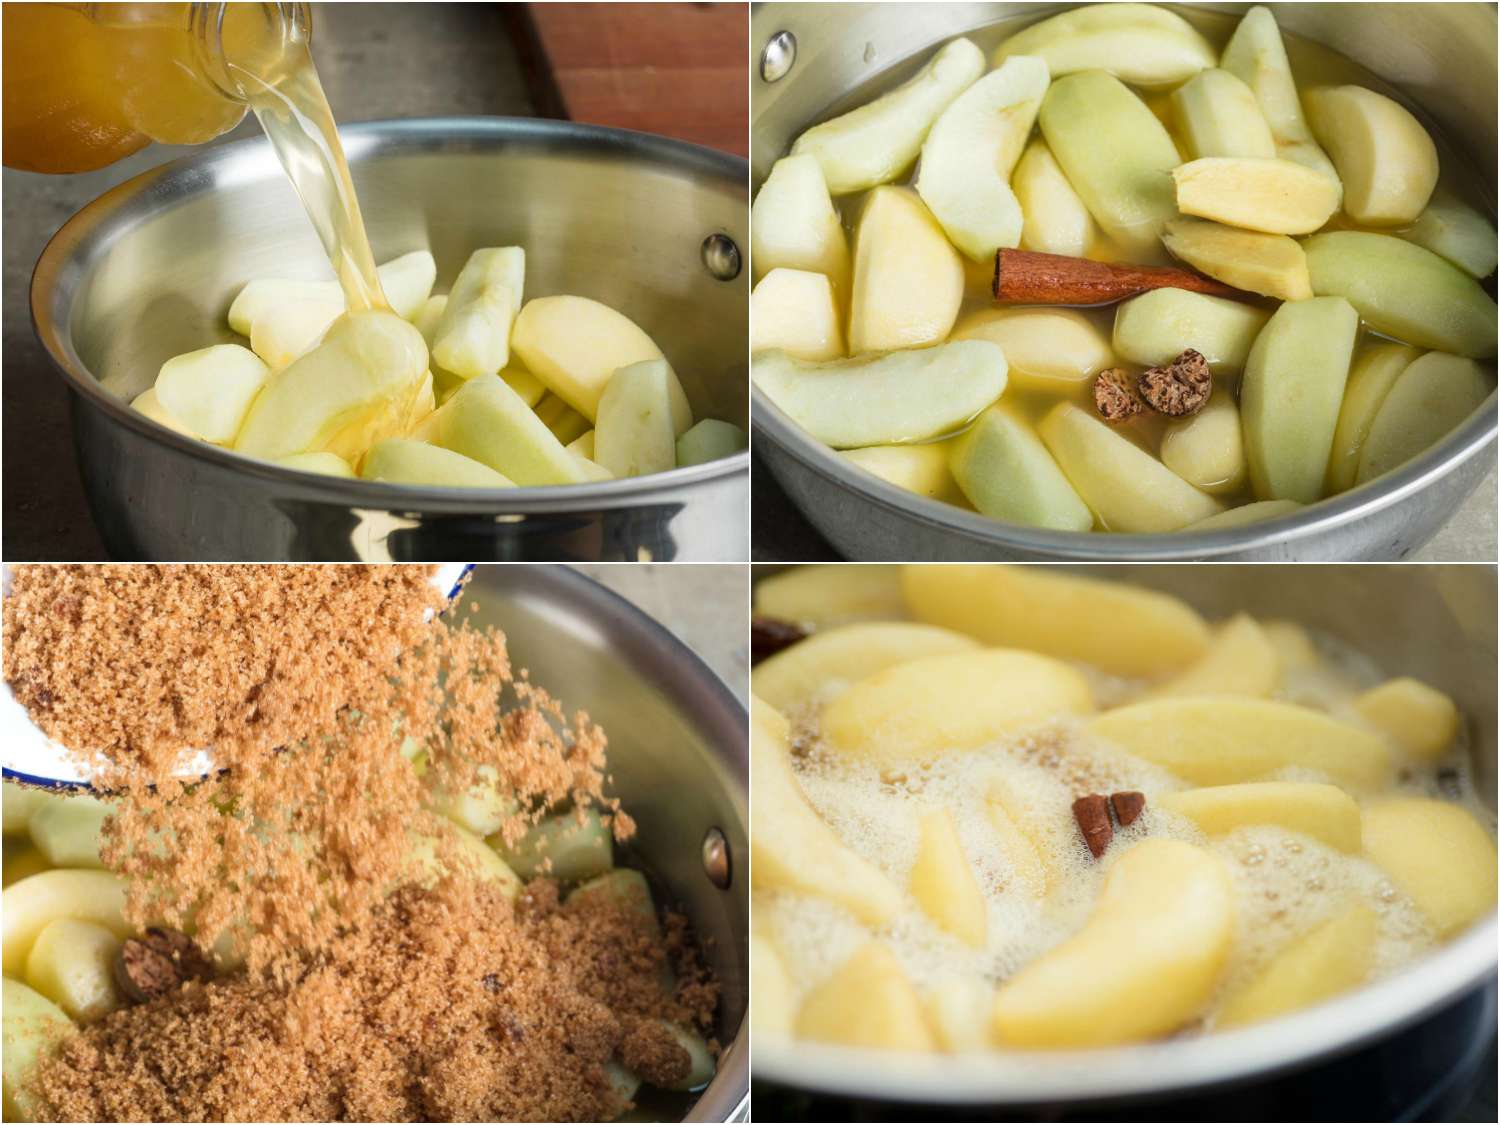 20170730-apple-compote-vicky-wasik_collage-1.jpg